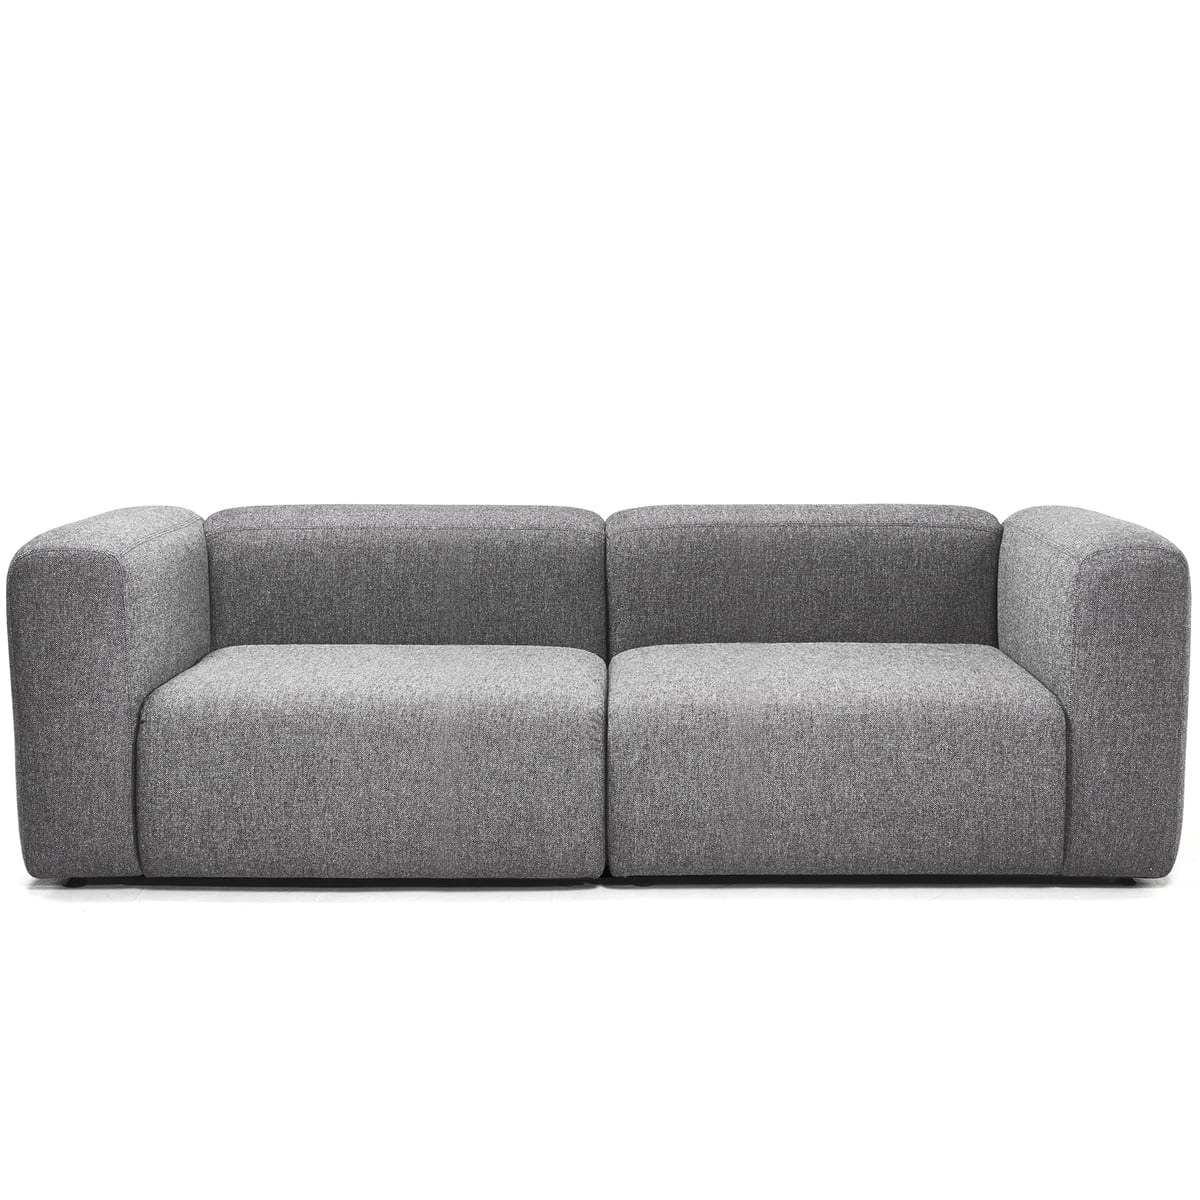 Pump 2 Seater Xl From Bruunmunch With The Kvadrat Fabric Hallingdal 130